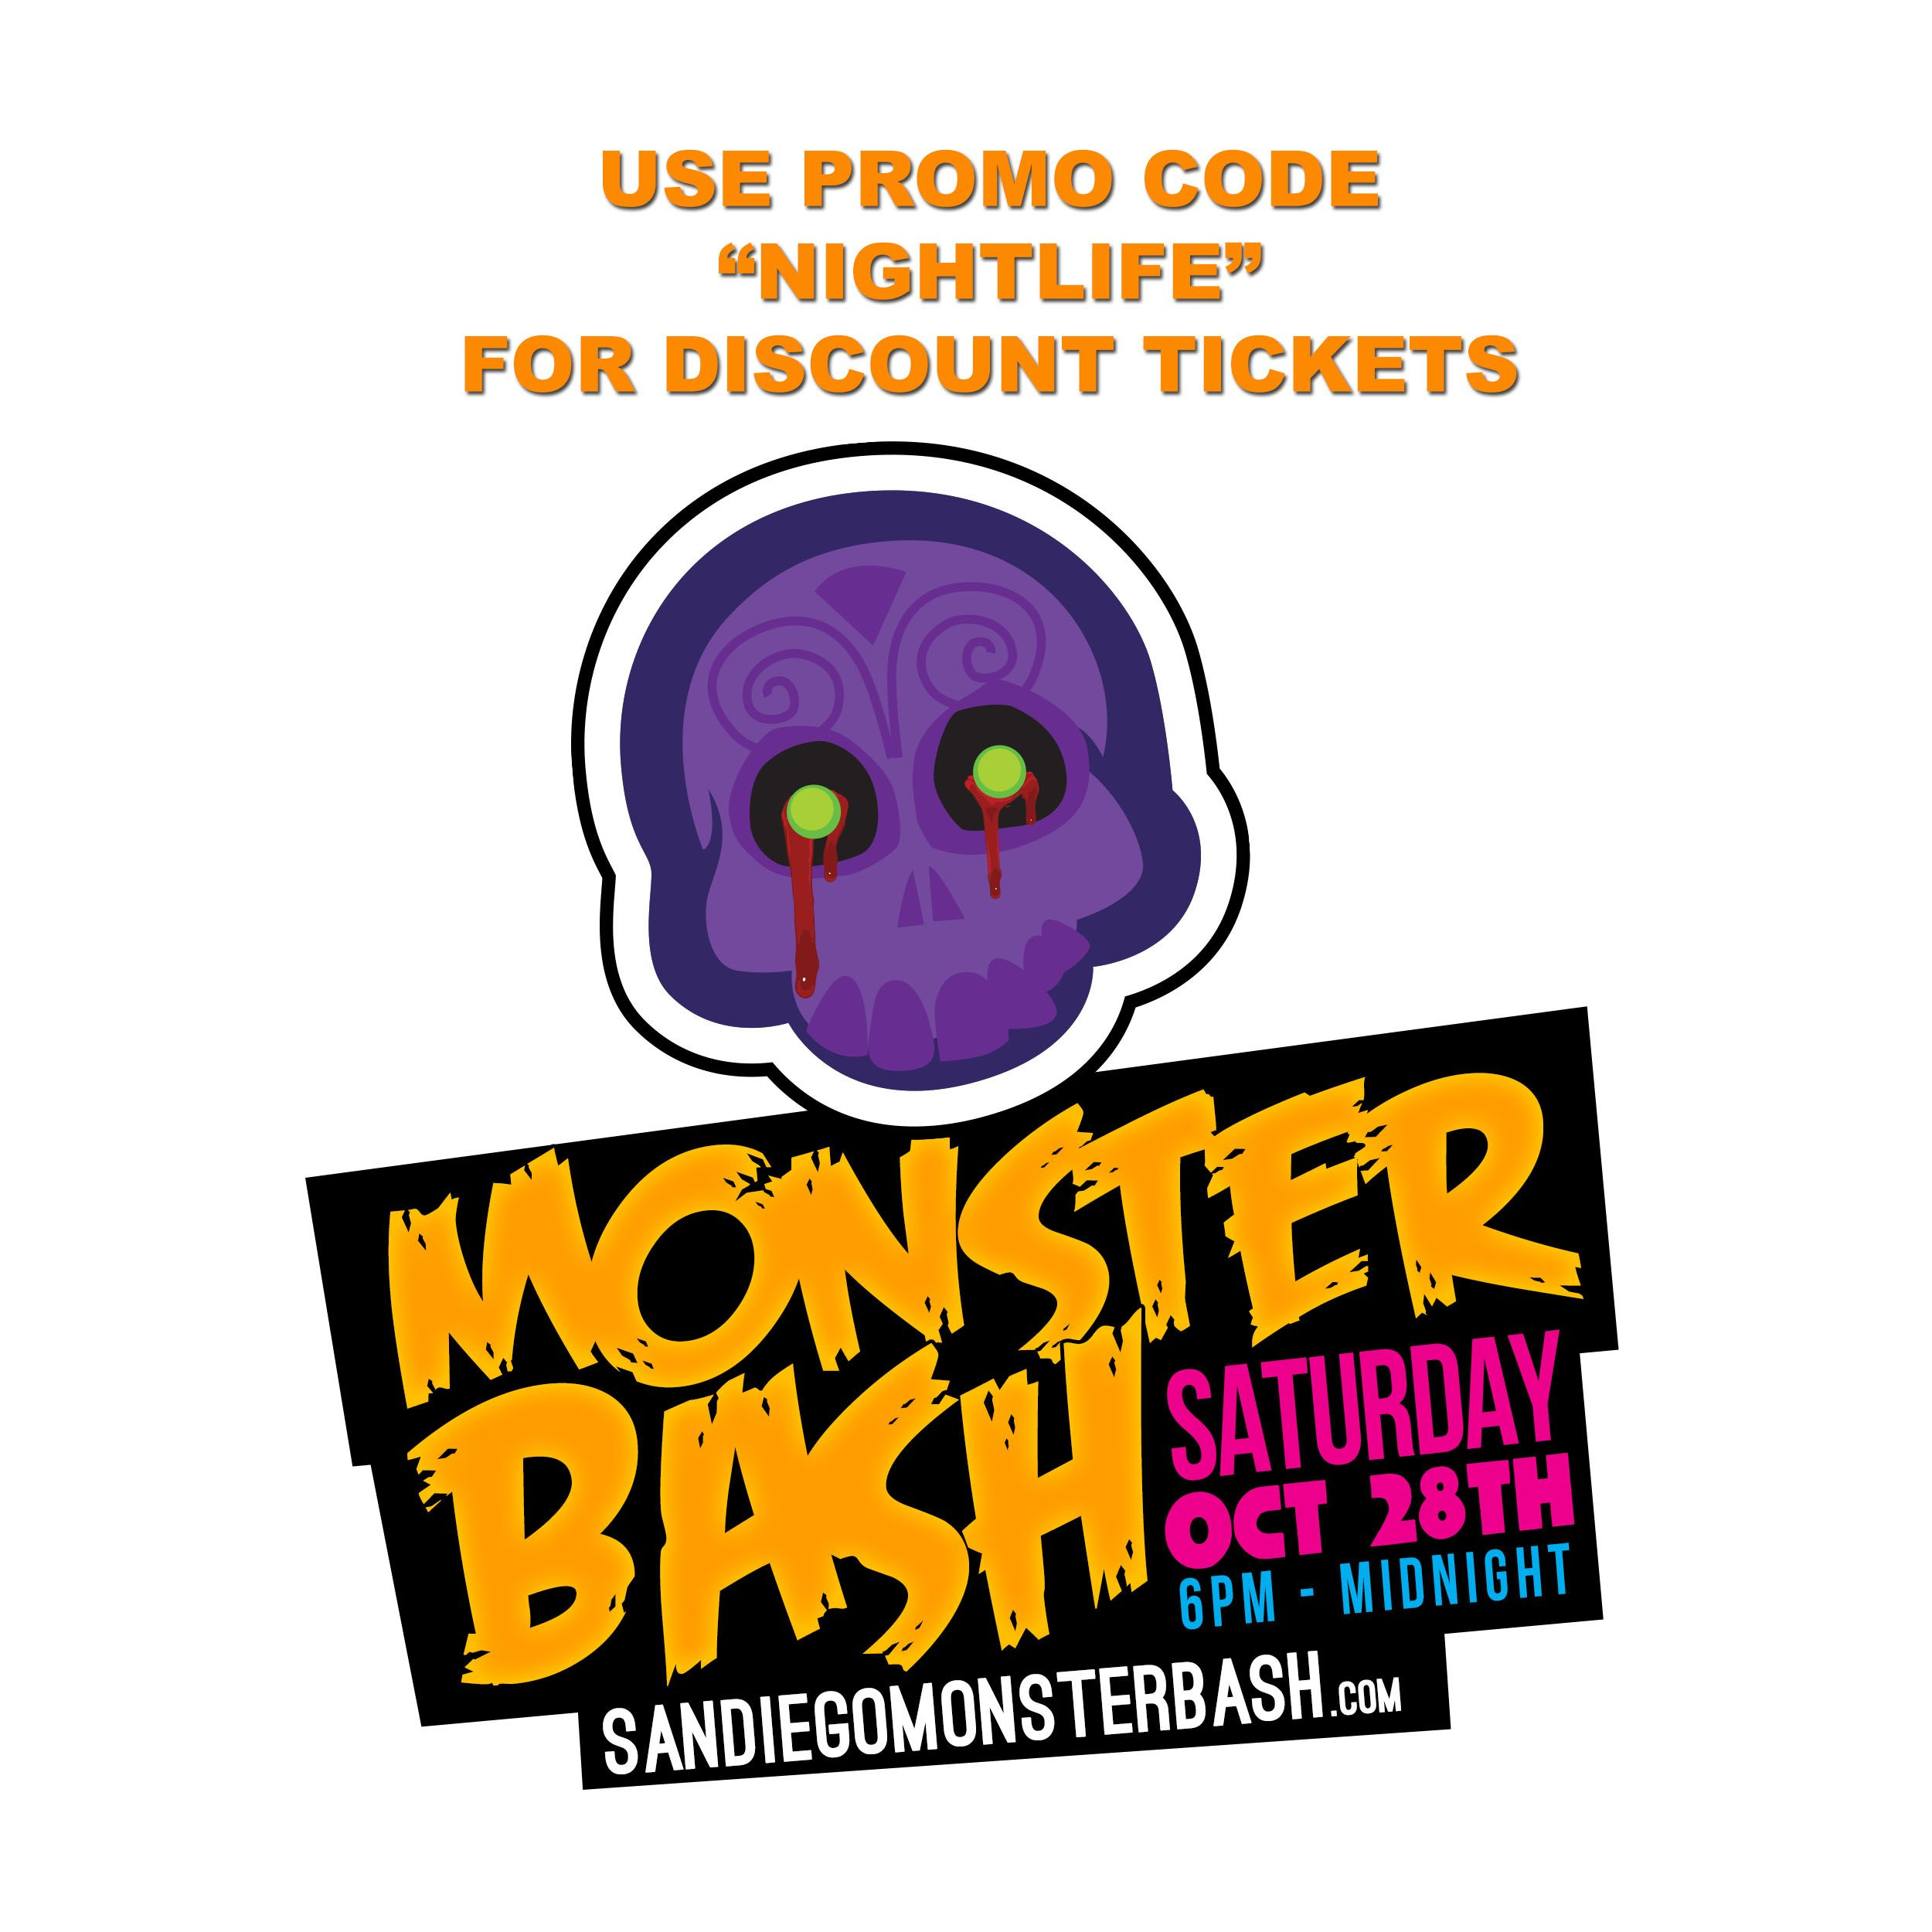 MONSTER BASH GASLAMP HALLOWEEN PARTY SAN DIEGO DISCOUNT TICKETS ...